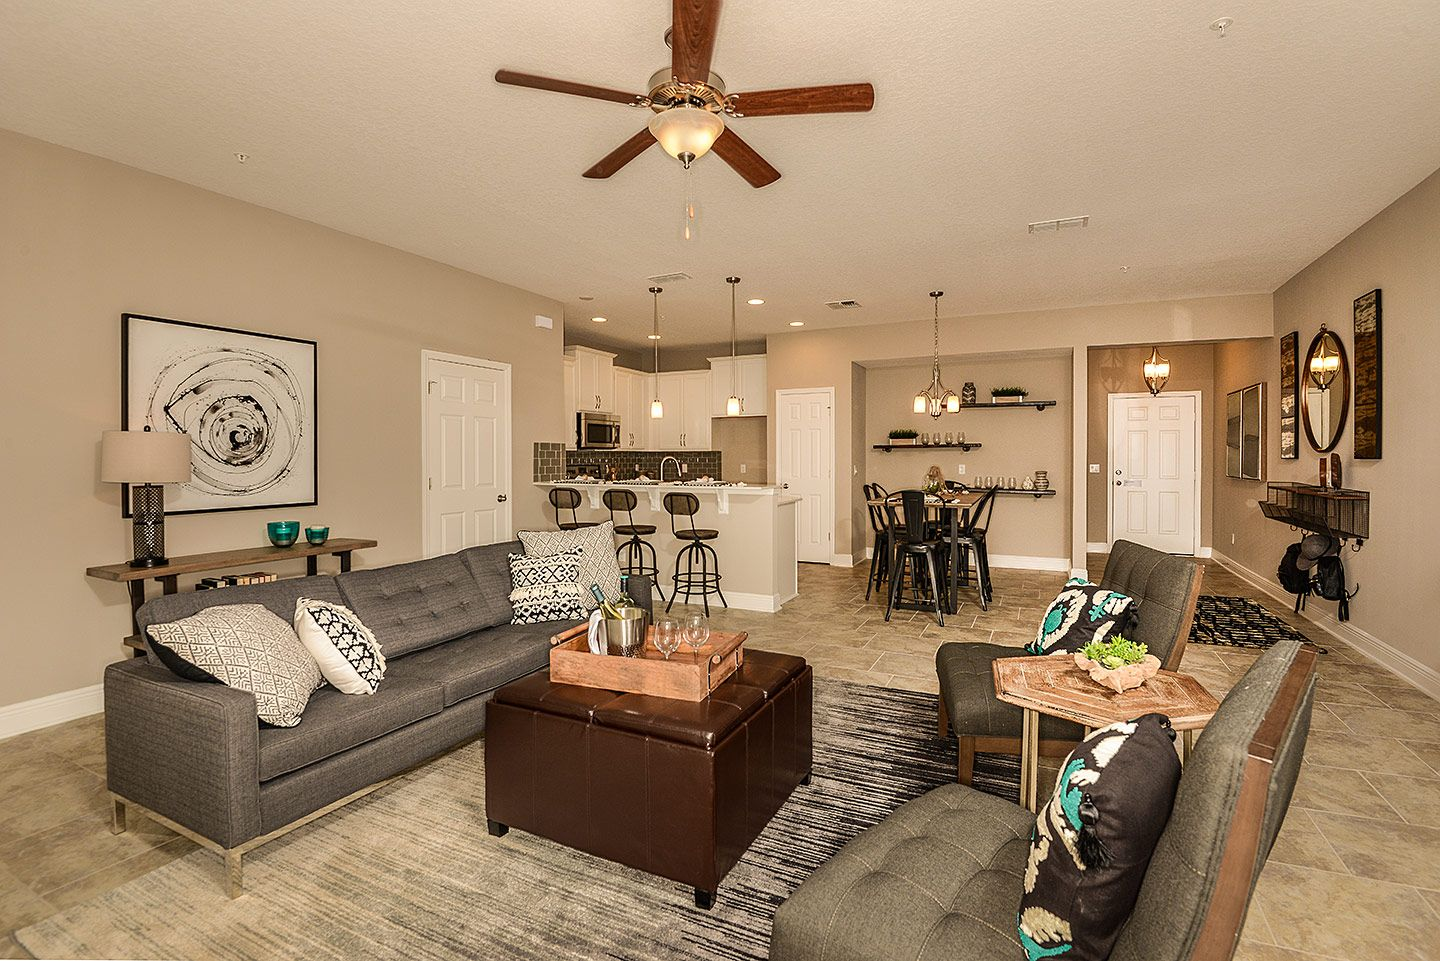 Do you love to entertain if so this living room is calling your